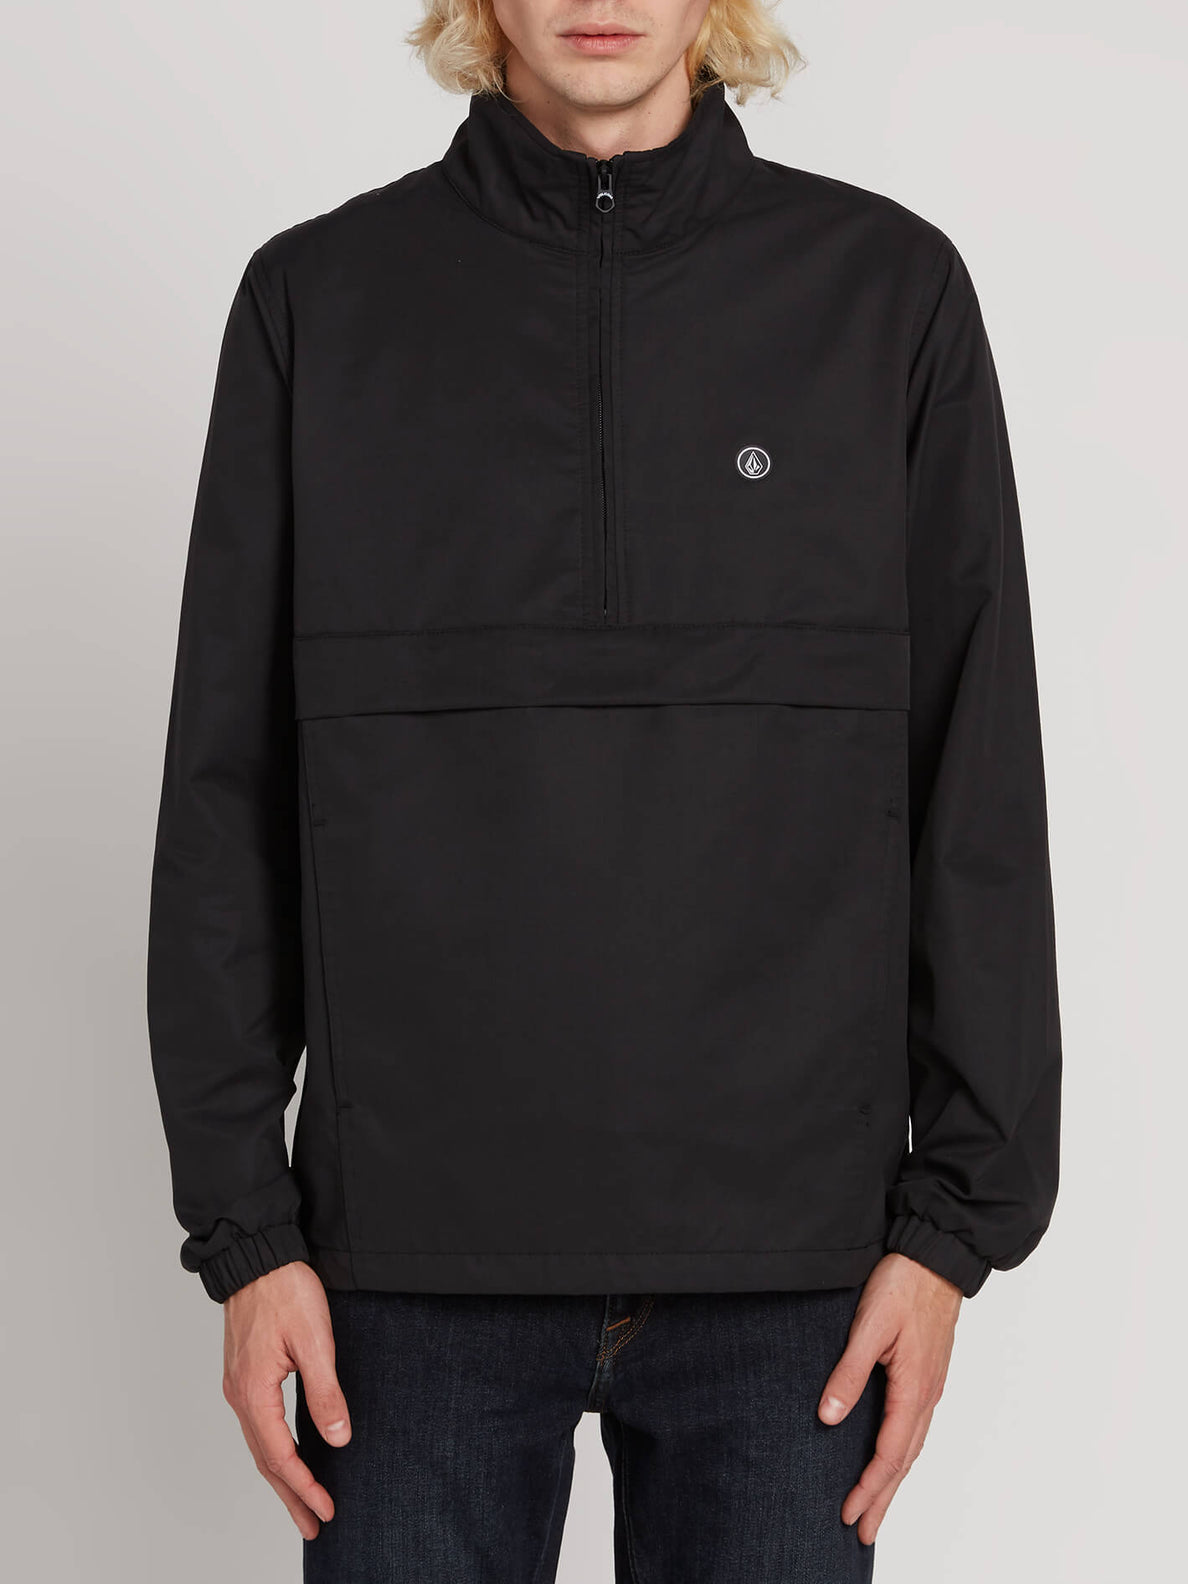 Wilfred Jacket - Black (A1531904_BLK) [F]